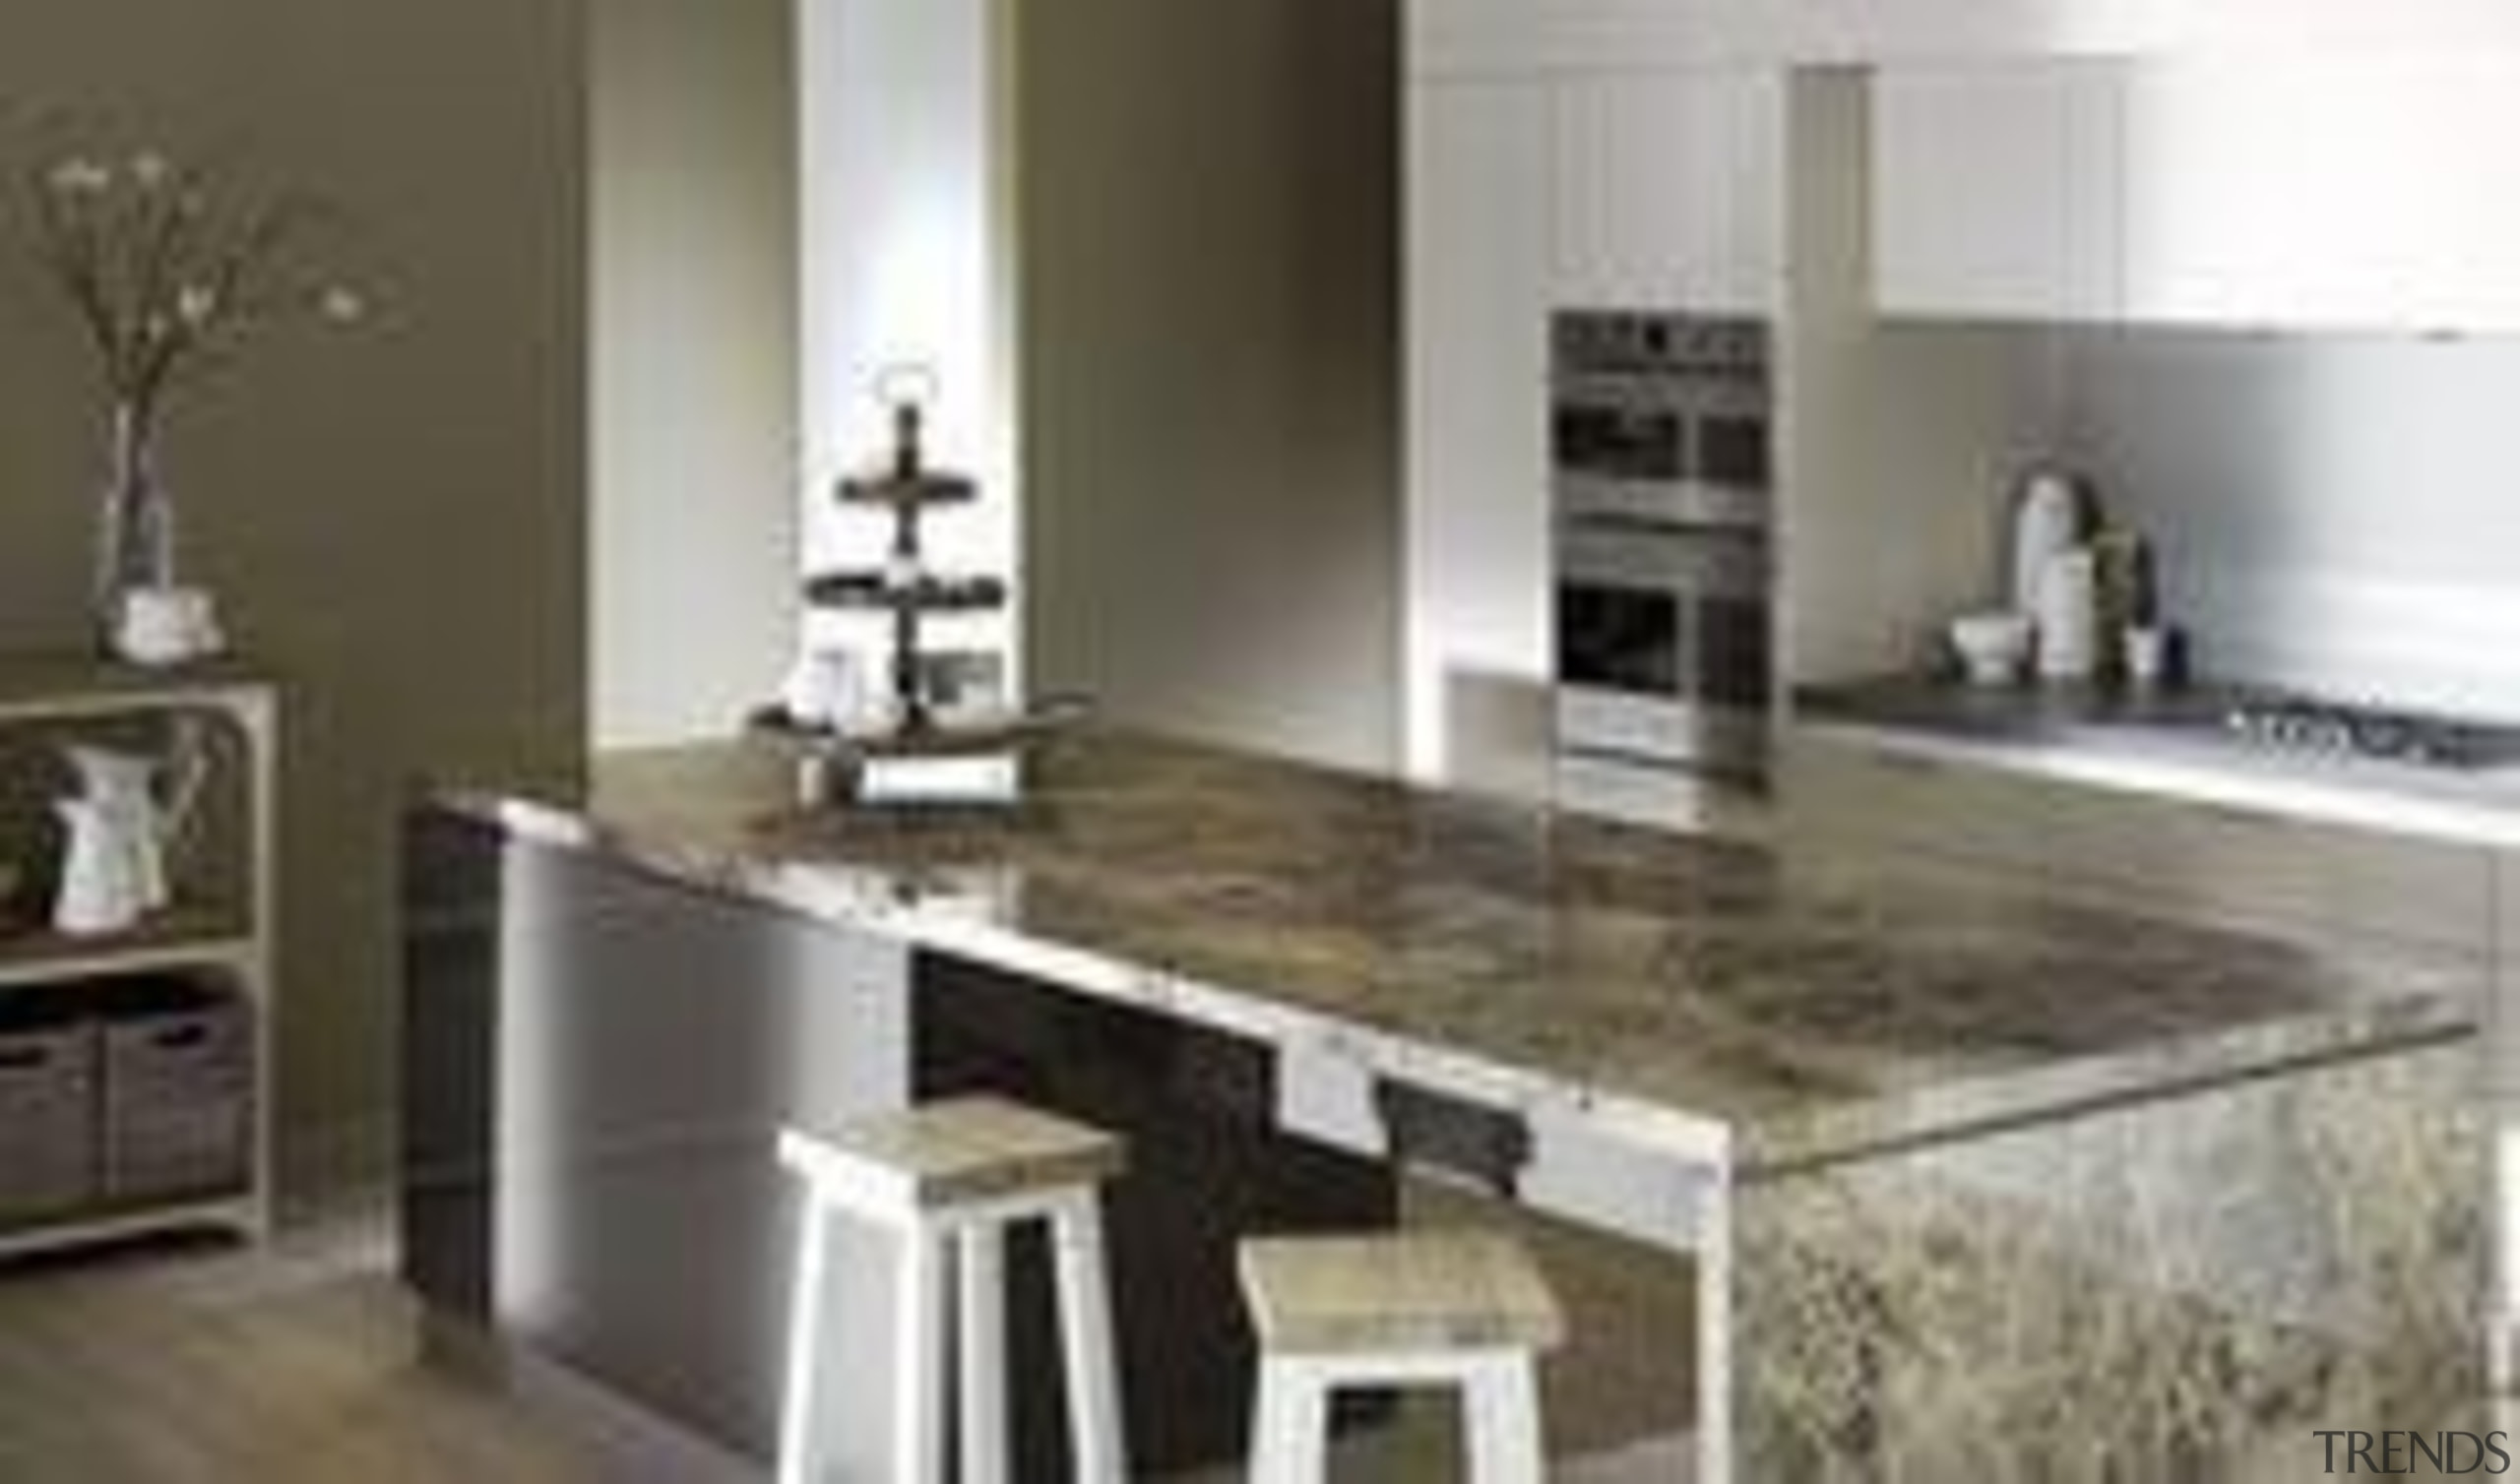 My Dream Kitchen : Inspiration Gallery : Granite countertop, cuisine classique, floor, flooring, furniture, interior design, kitchen, table, gray, white